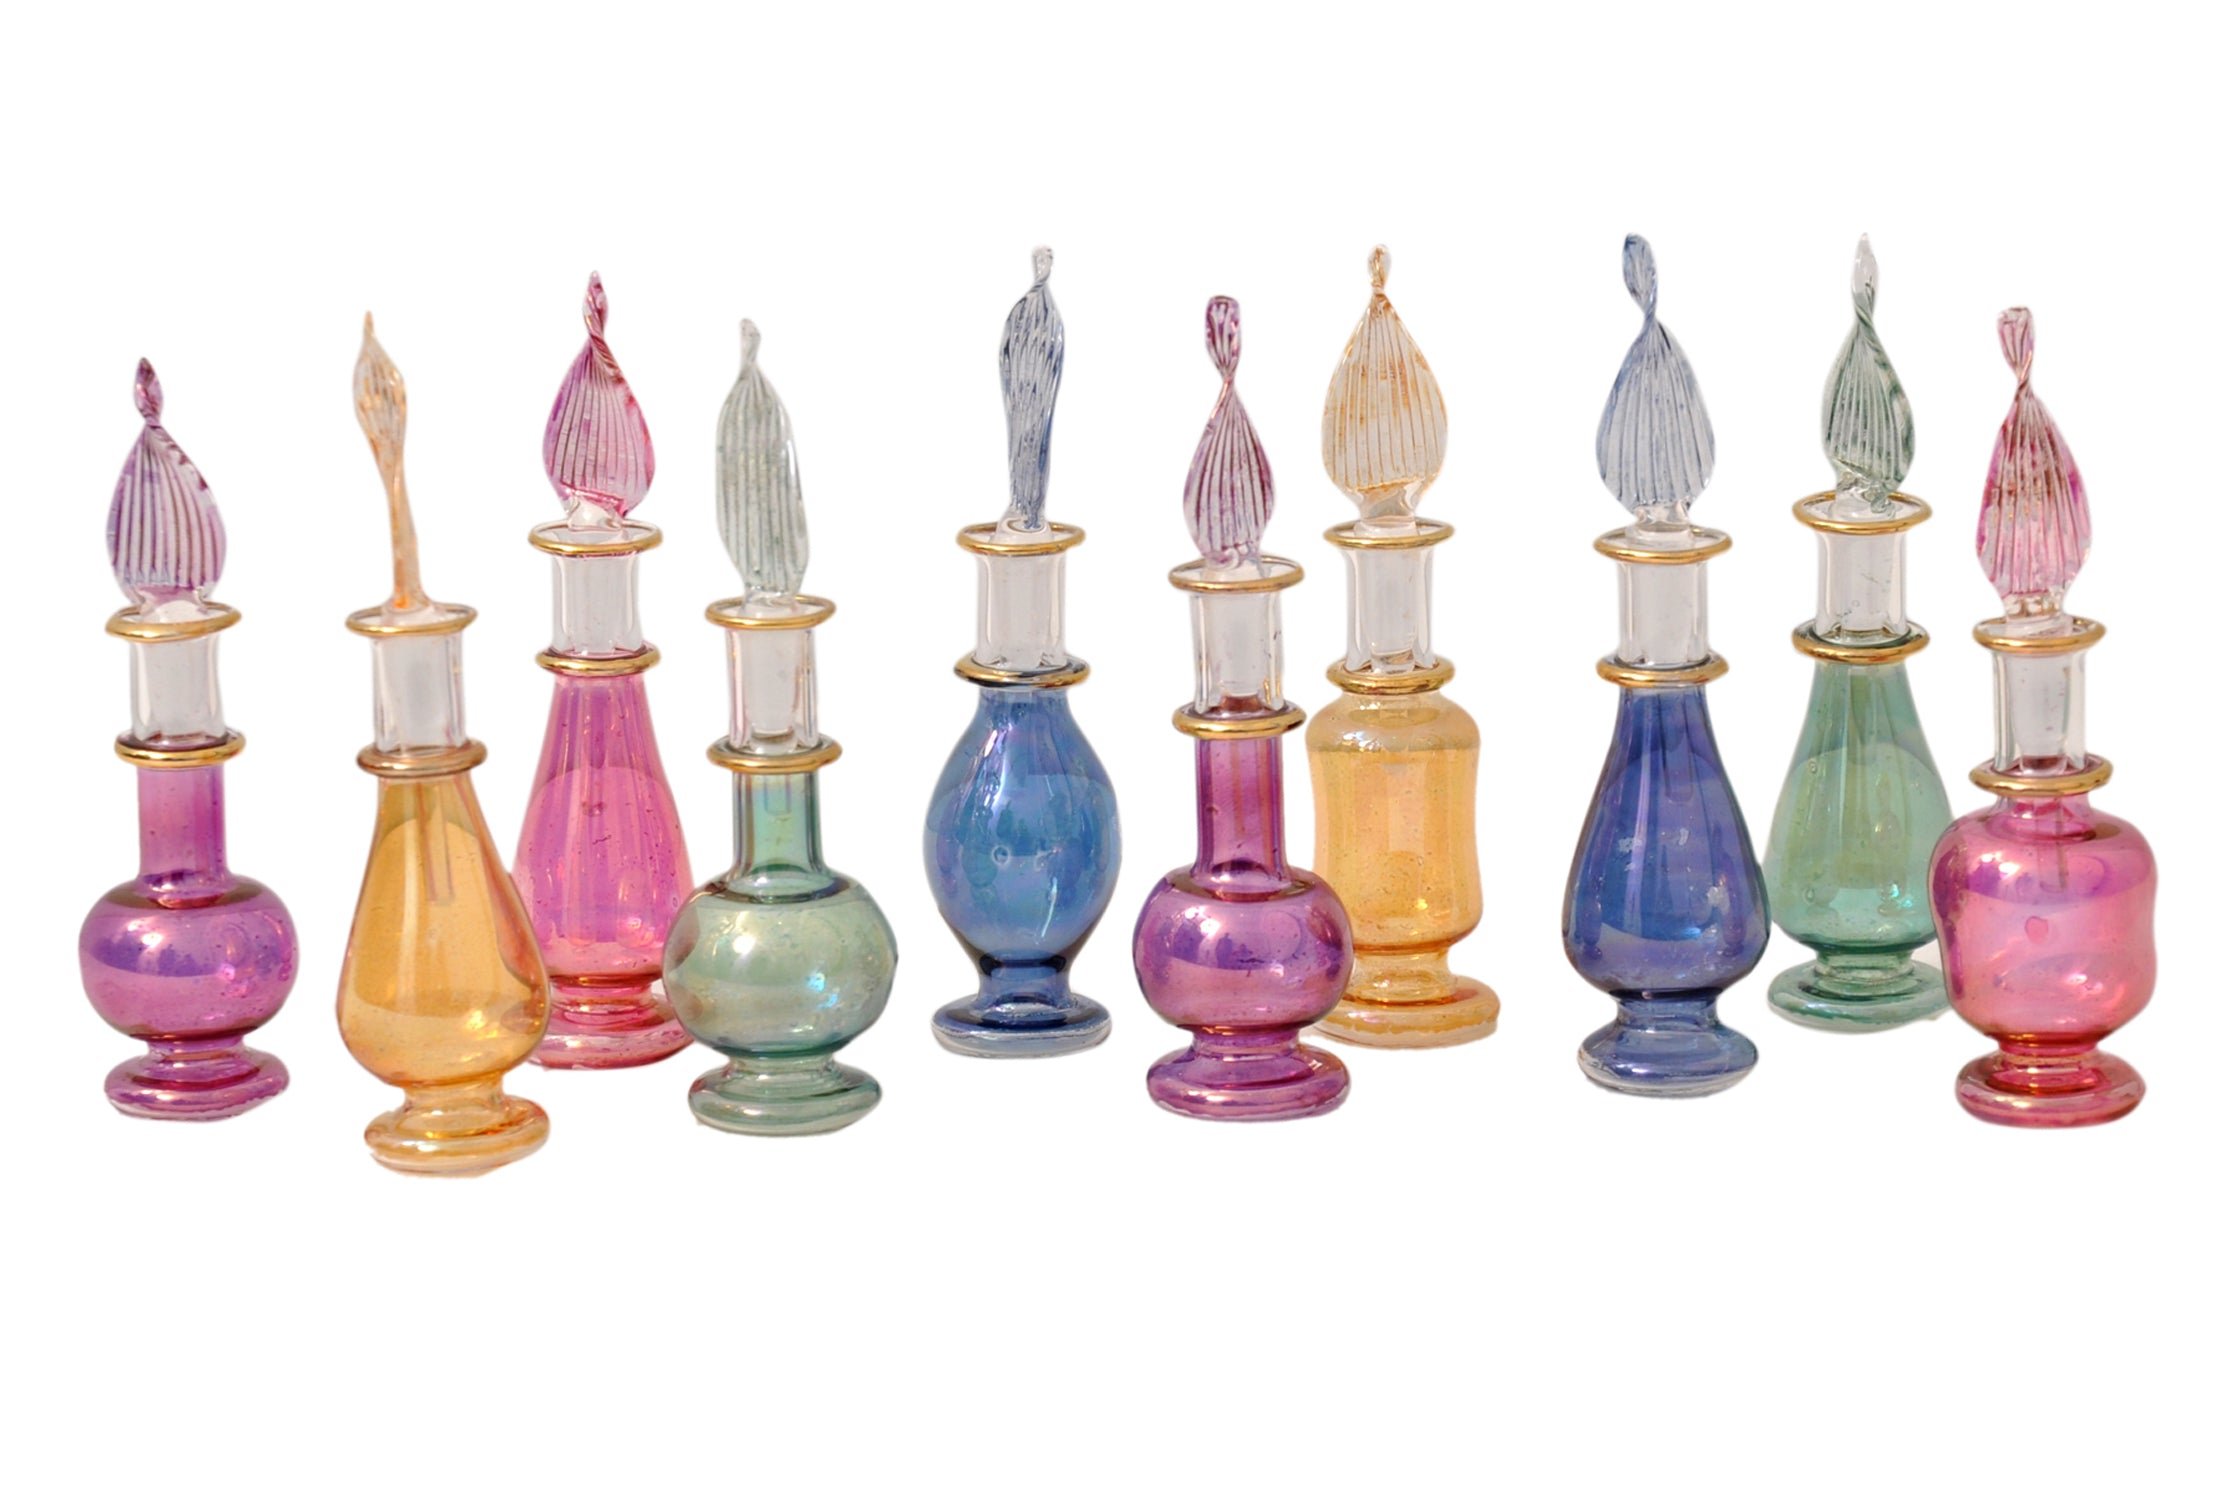 Egyptian perfume bottles Set of 10 hand Blown Decorative Pyrex Glass Vials Height 2 Inch (5 cm) by CraftsOfEgypt